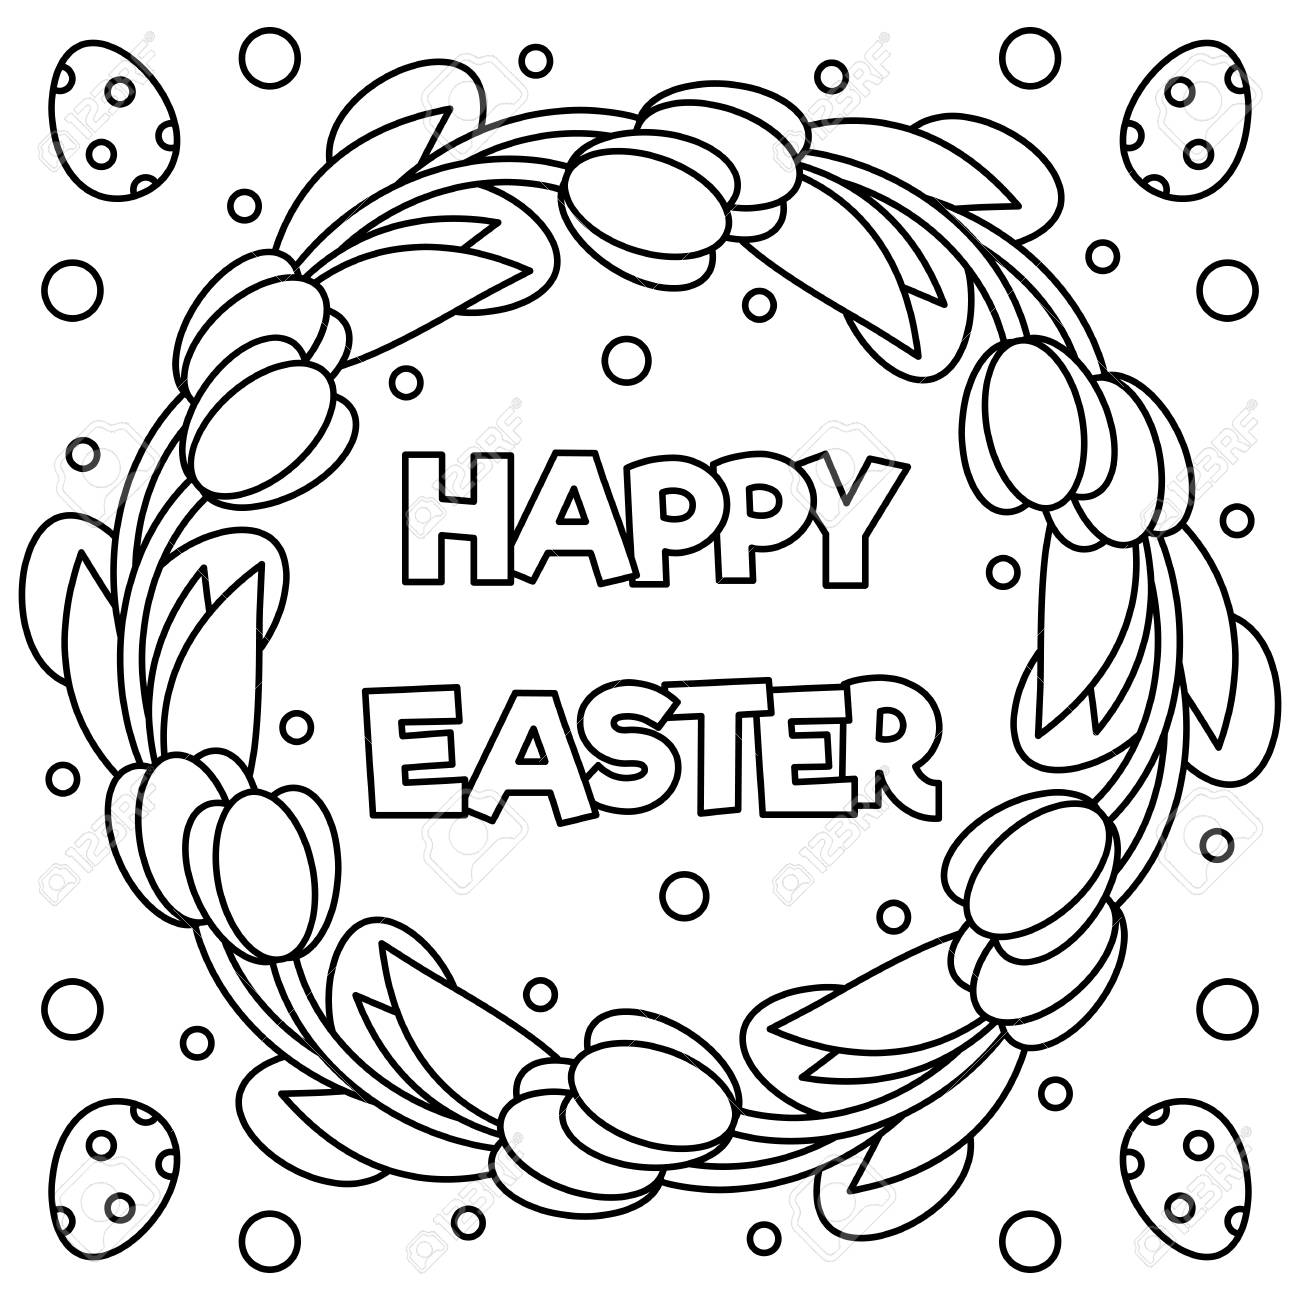 Happy Easter Coloring Page Black And White Vector Illustration